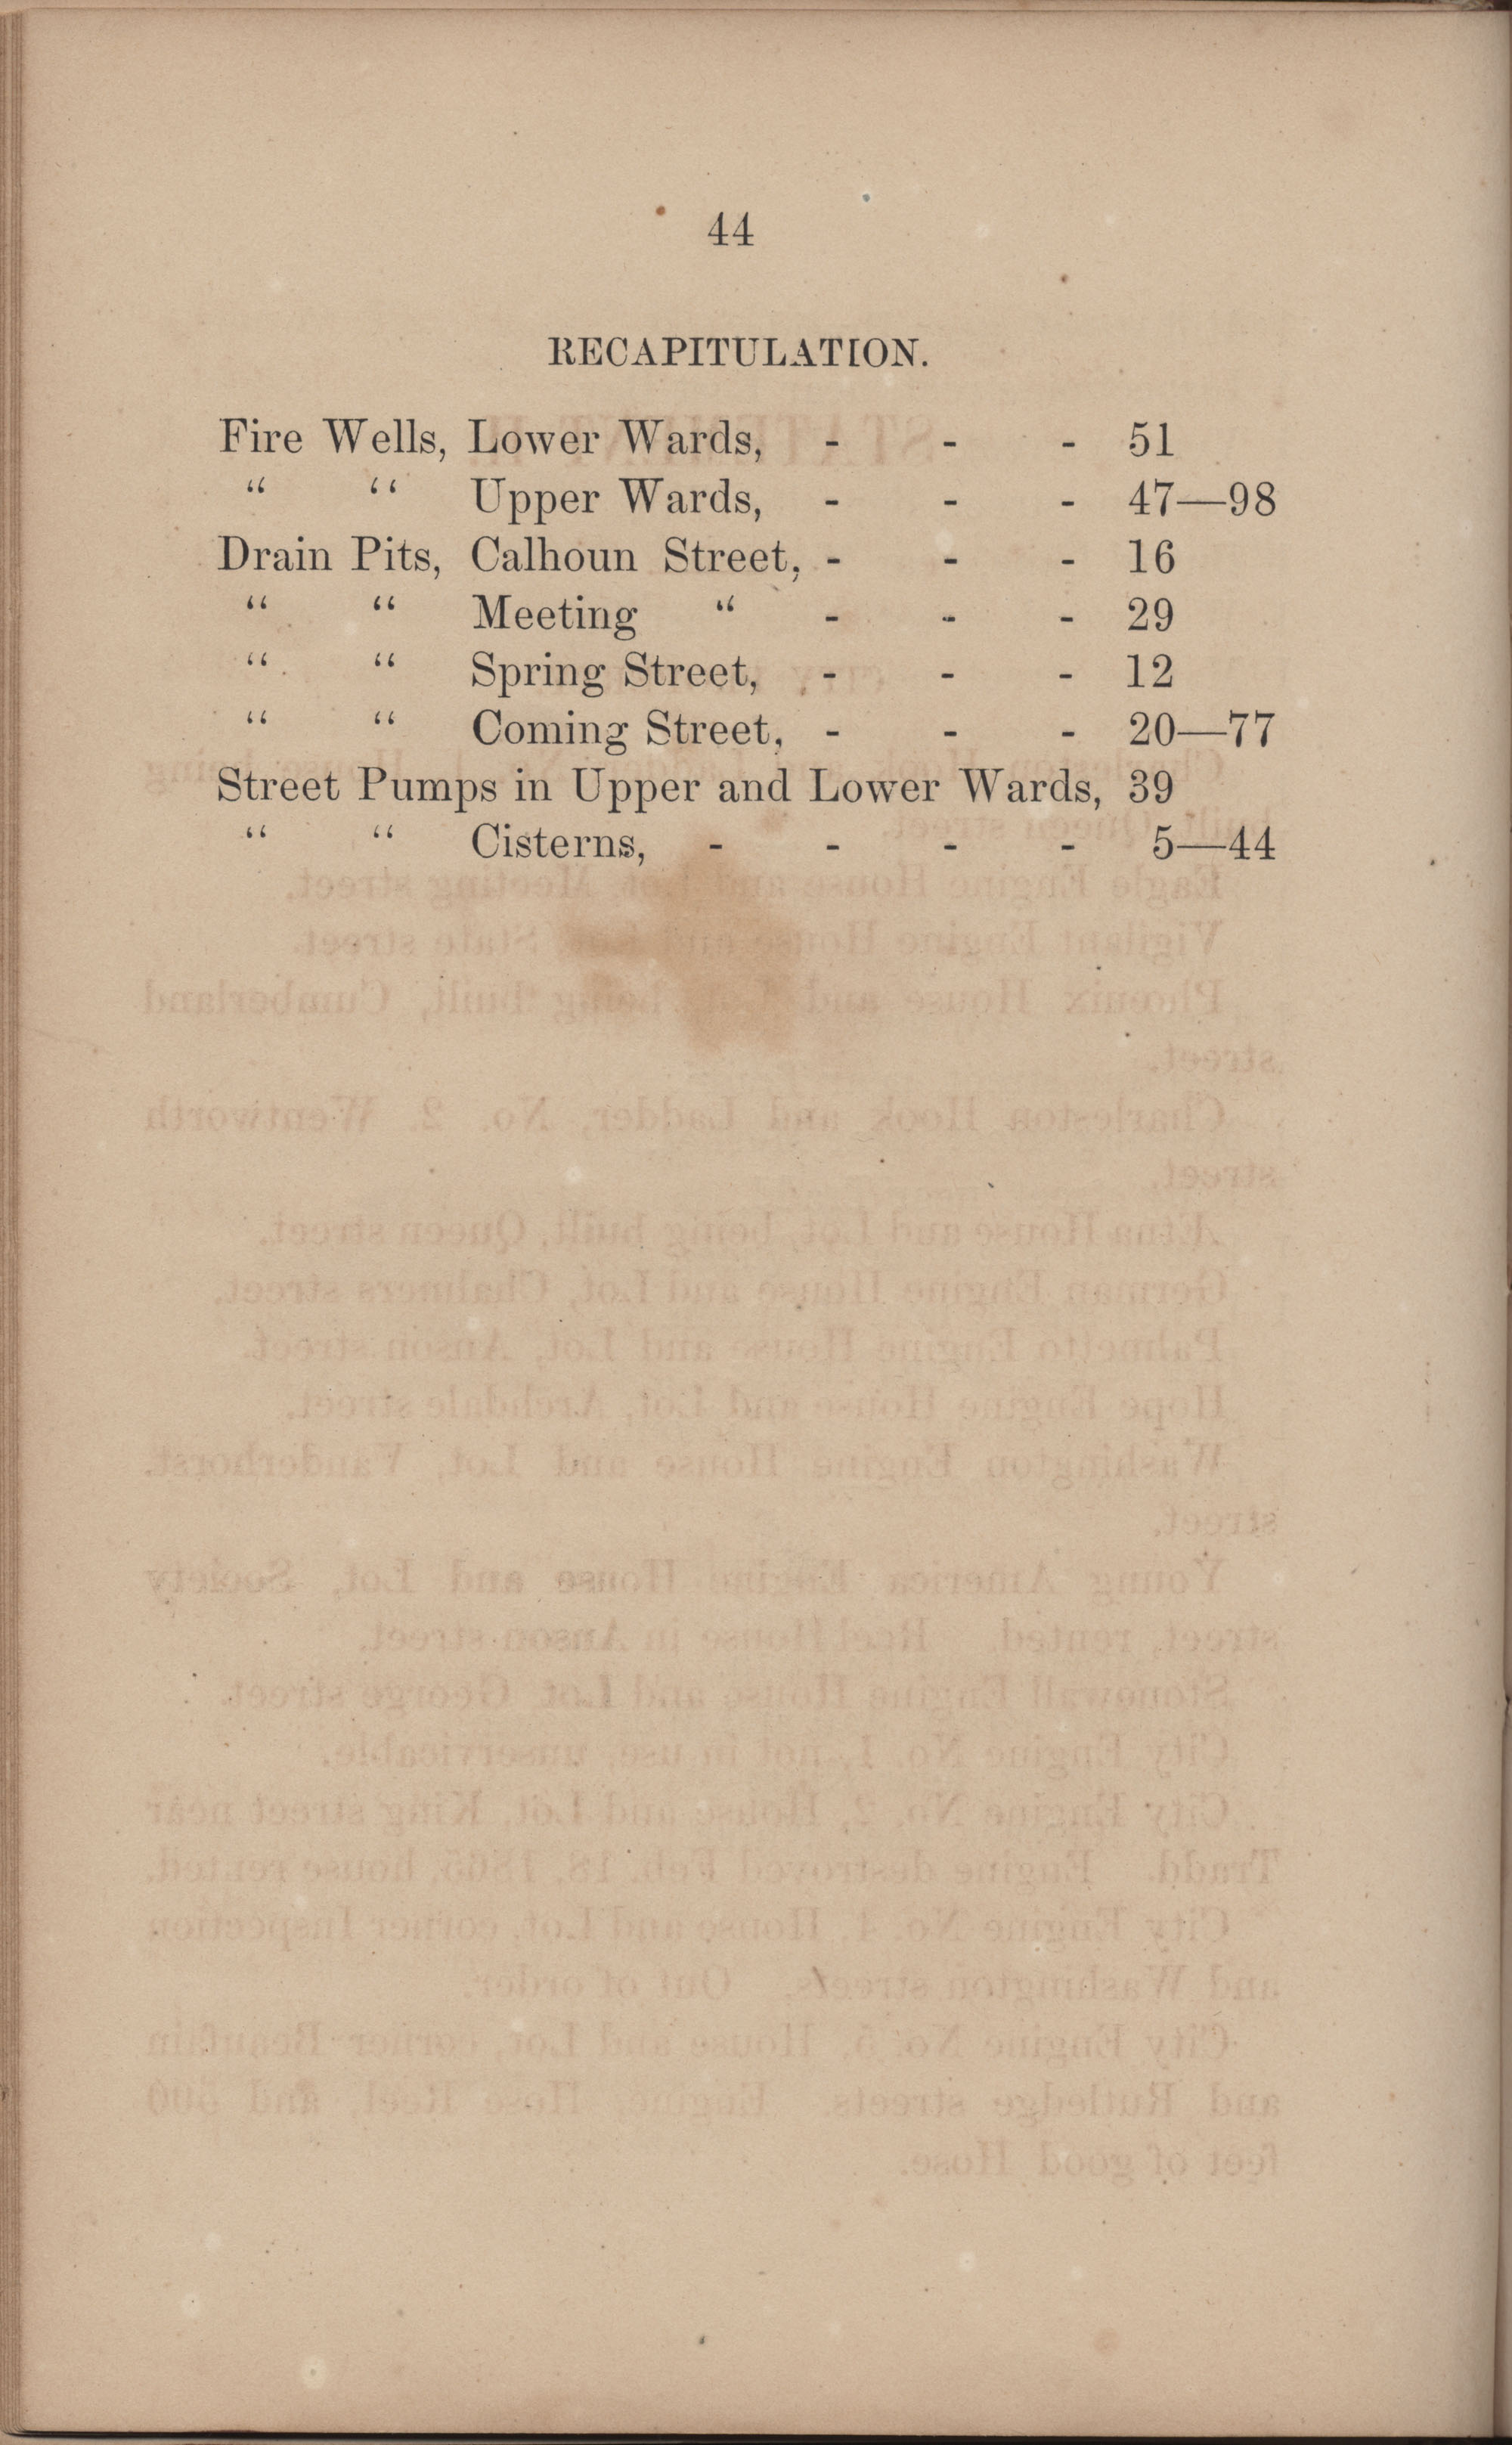 Annual Report of the Chief of the Fire Department of the City of Charleston, page 222